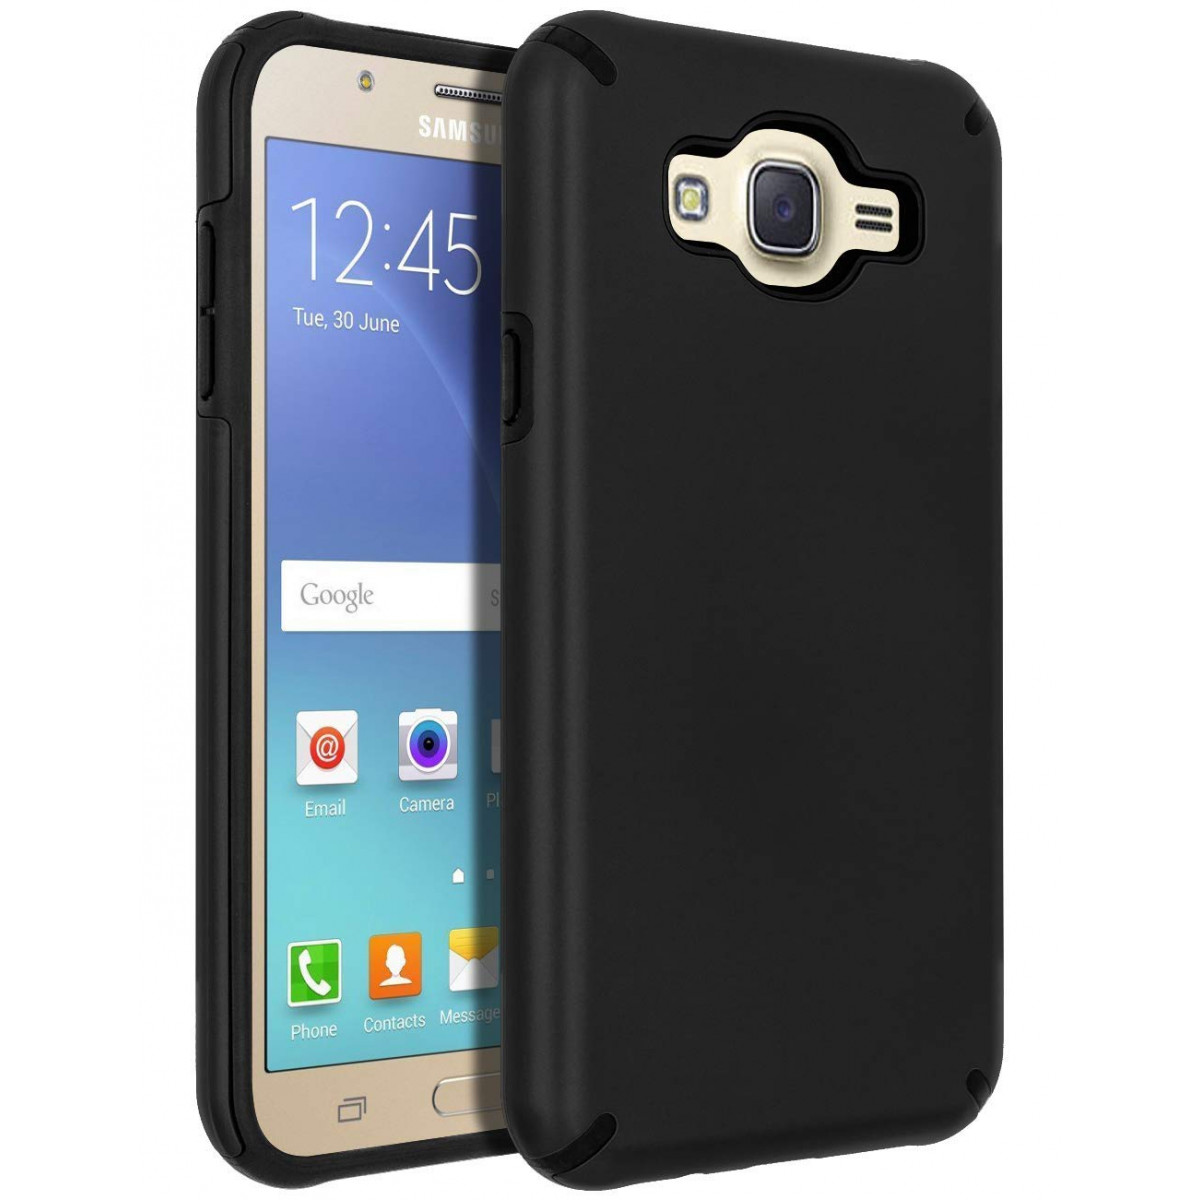 Galaxy J7 (2015) Case,Galaxy J7 Case,SENON Slim-fit Shockproof Anti-Scratch Anti-Fingerprint Protective Case Cover for Samsung ...